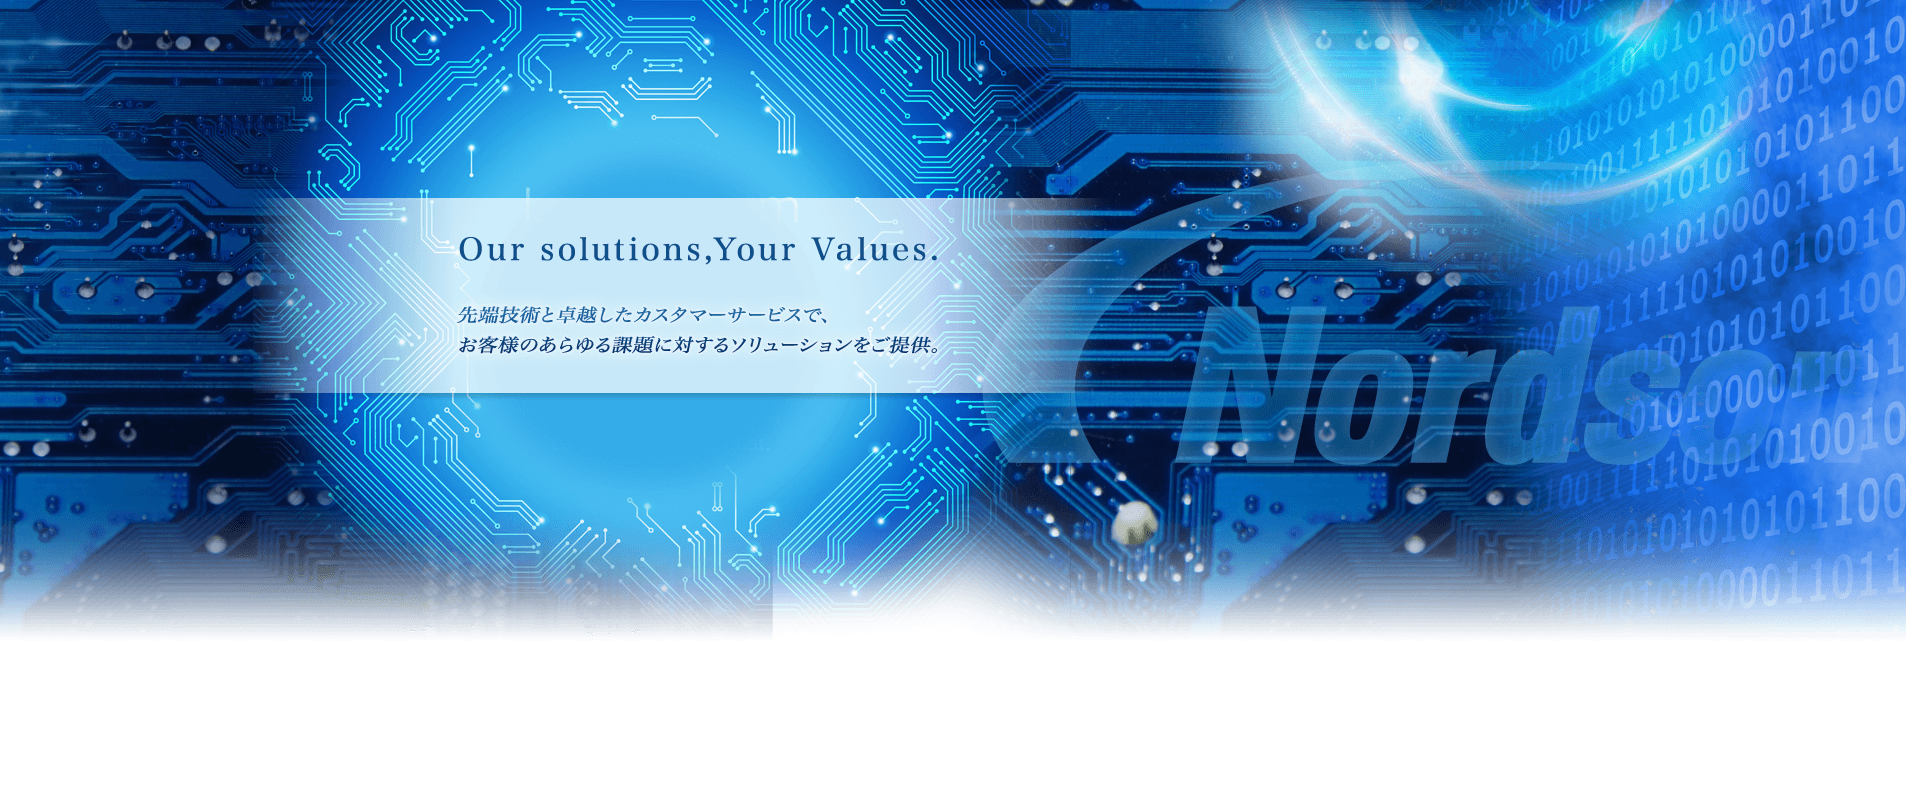 Our solutions,Your Values.